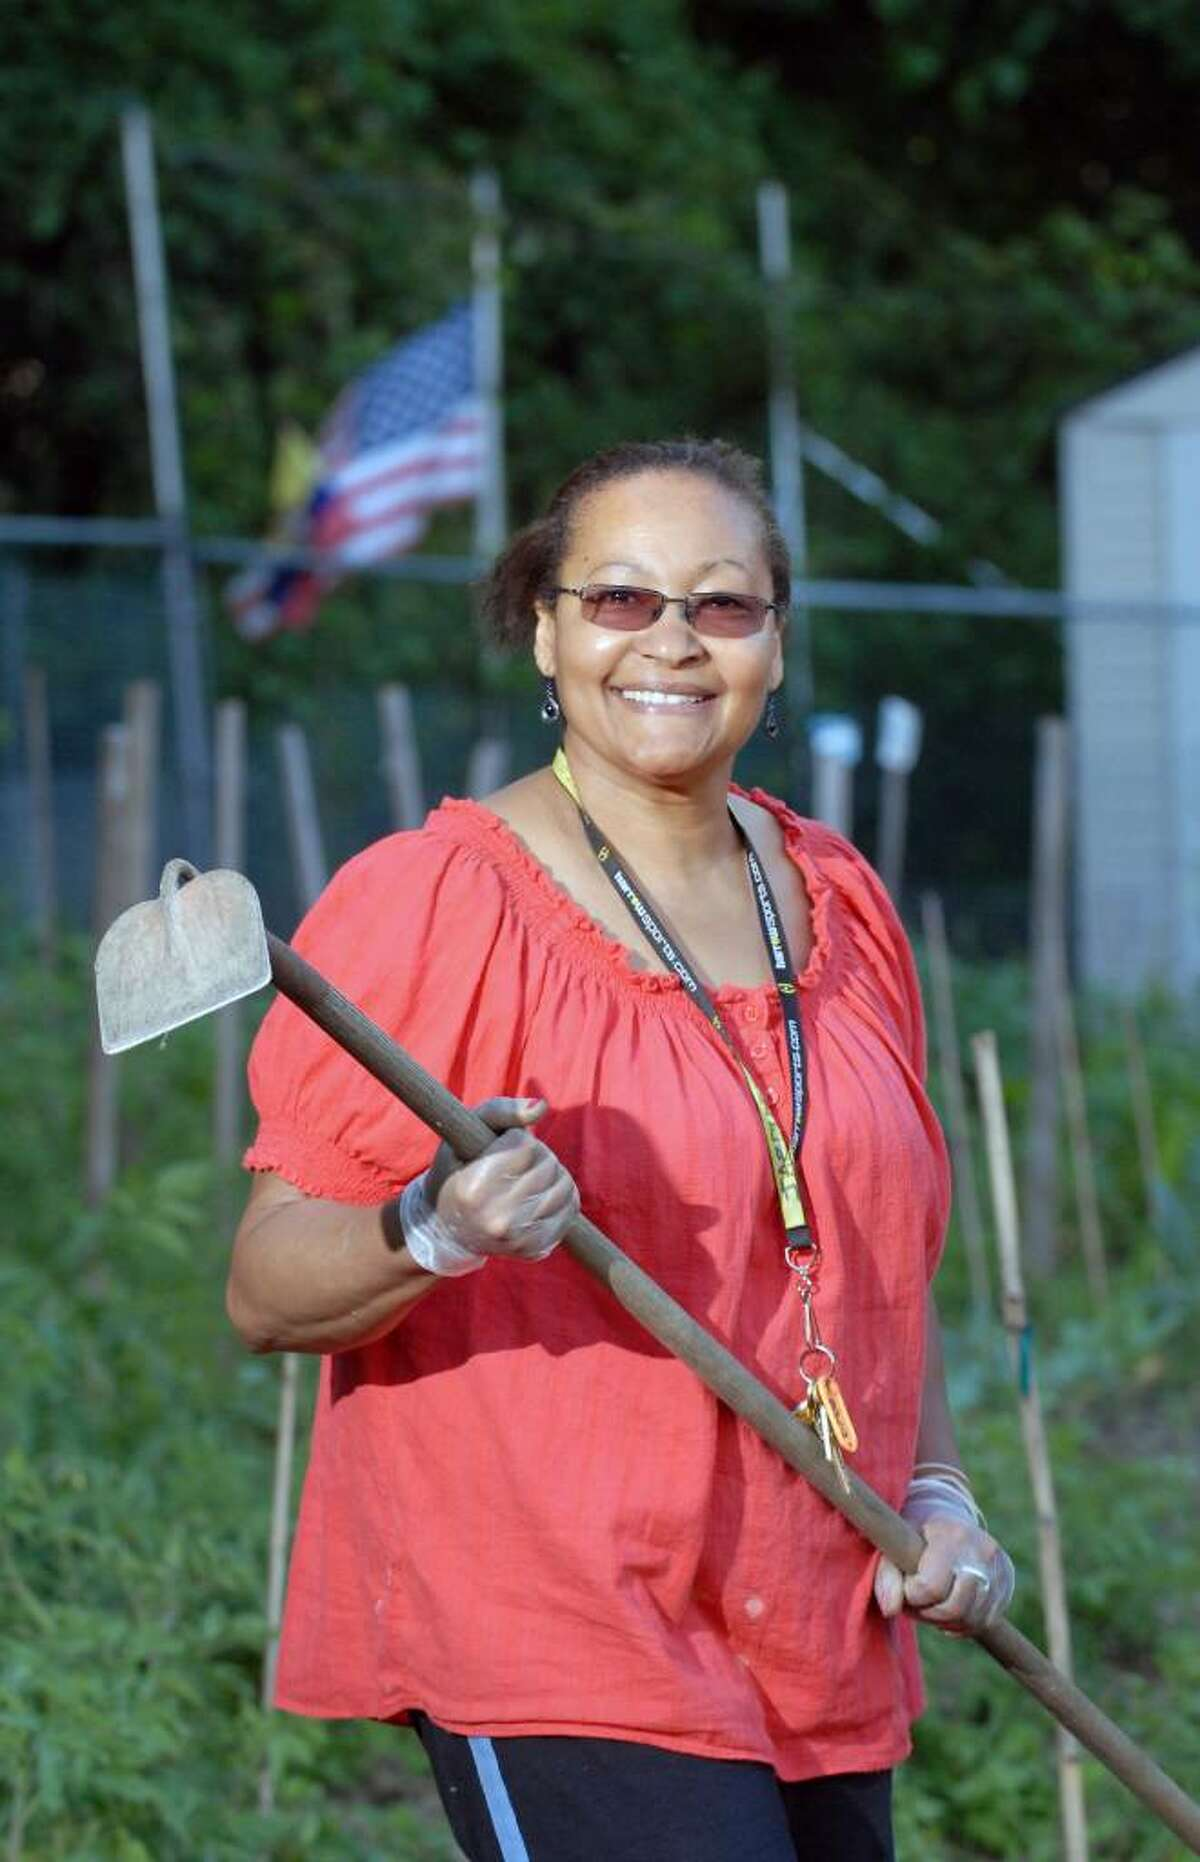 Jocelyne Dorisme, 54, a resident of the Armstrong Court Housing Complex, Byram, poses in the community garden where she tends to her tomatoes, peppers and cabbage, Tuesday evening, June 15, 2010. Dorisme, a naturalized U.S. citizen from Haiti said about July 4th,